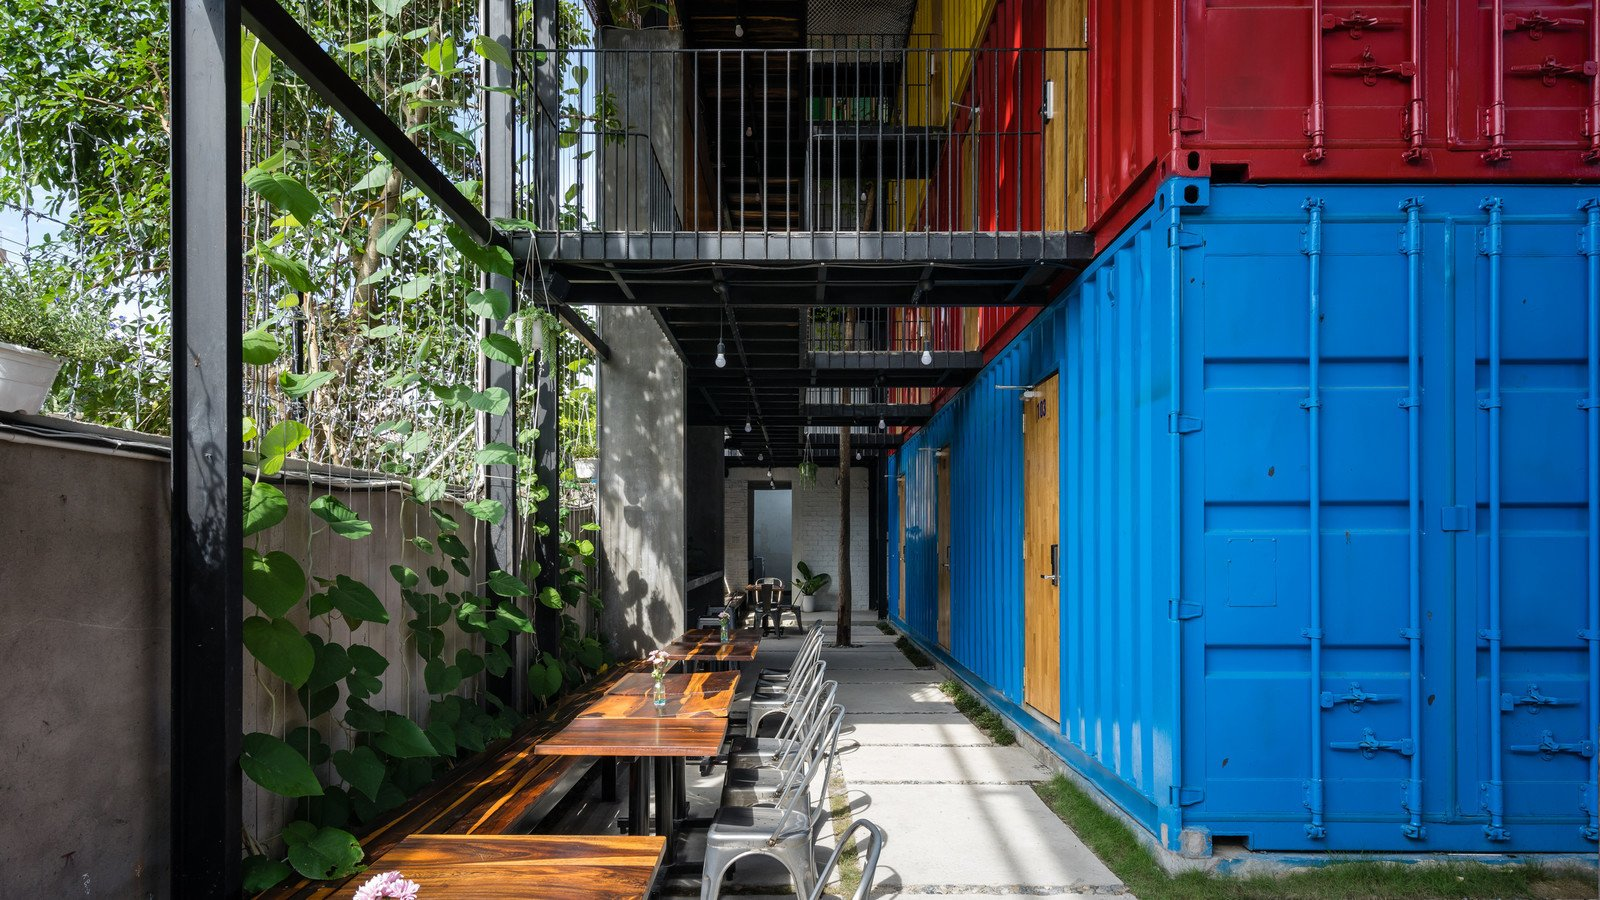 Photo 1 of 7 in 6 Well-Designed Hostels For the Minimalist Traveler